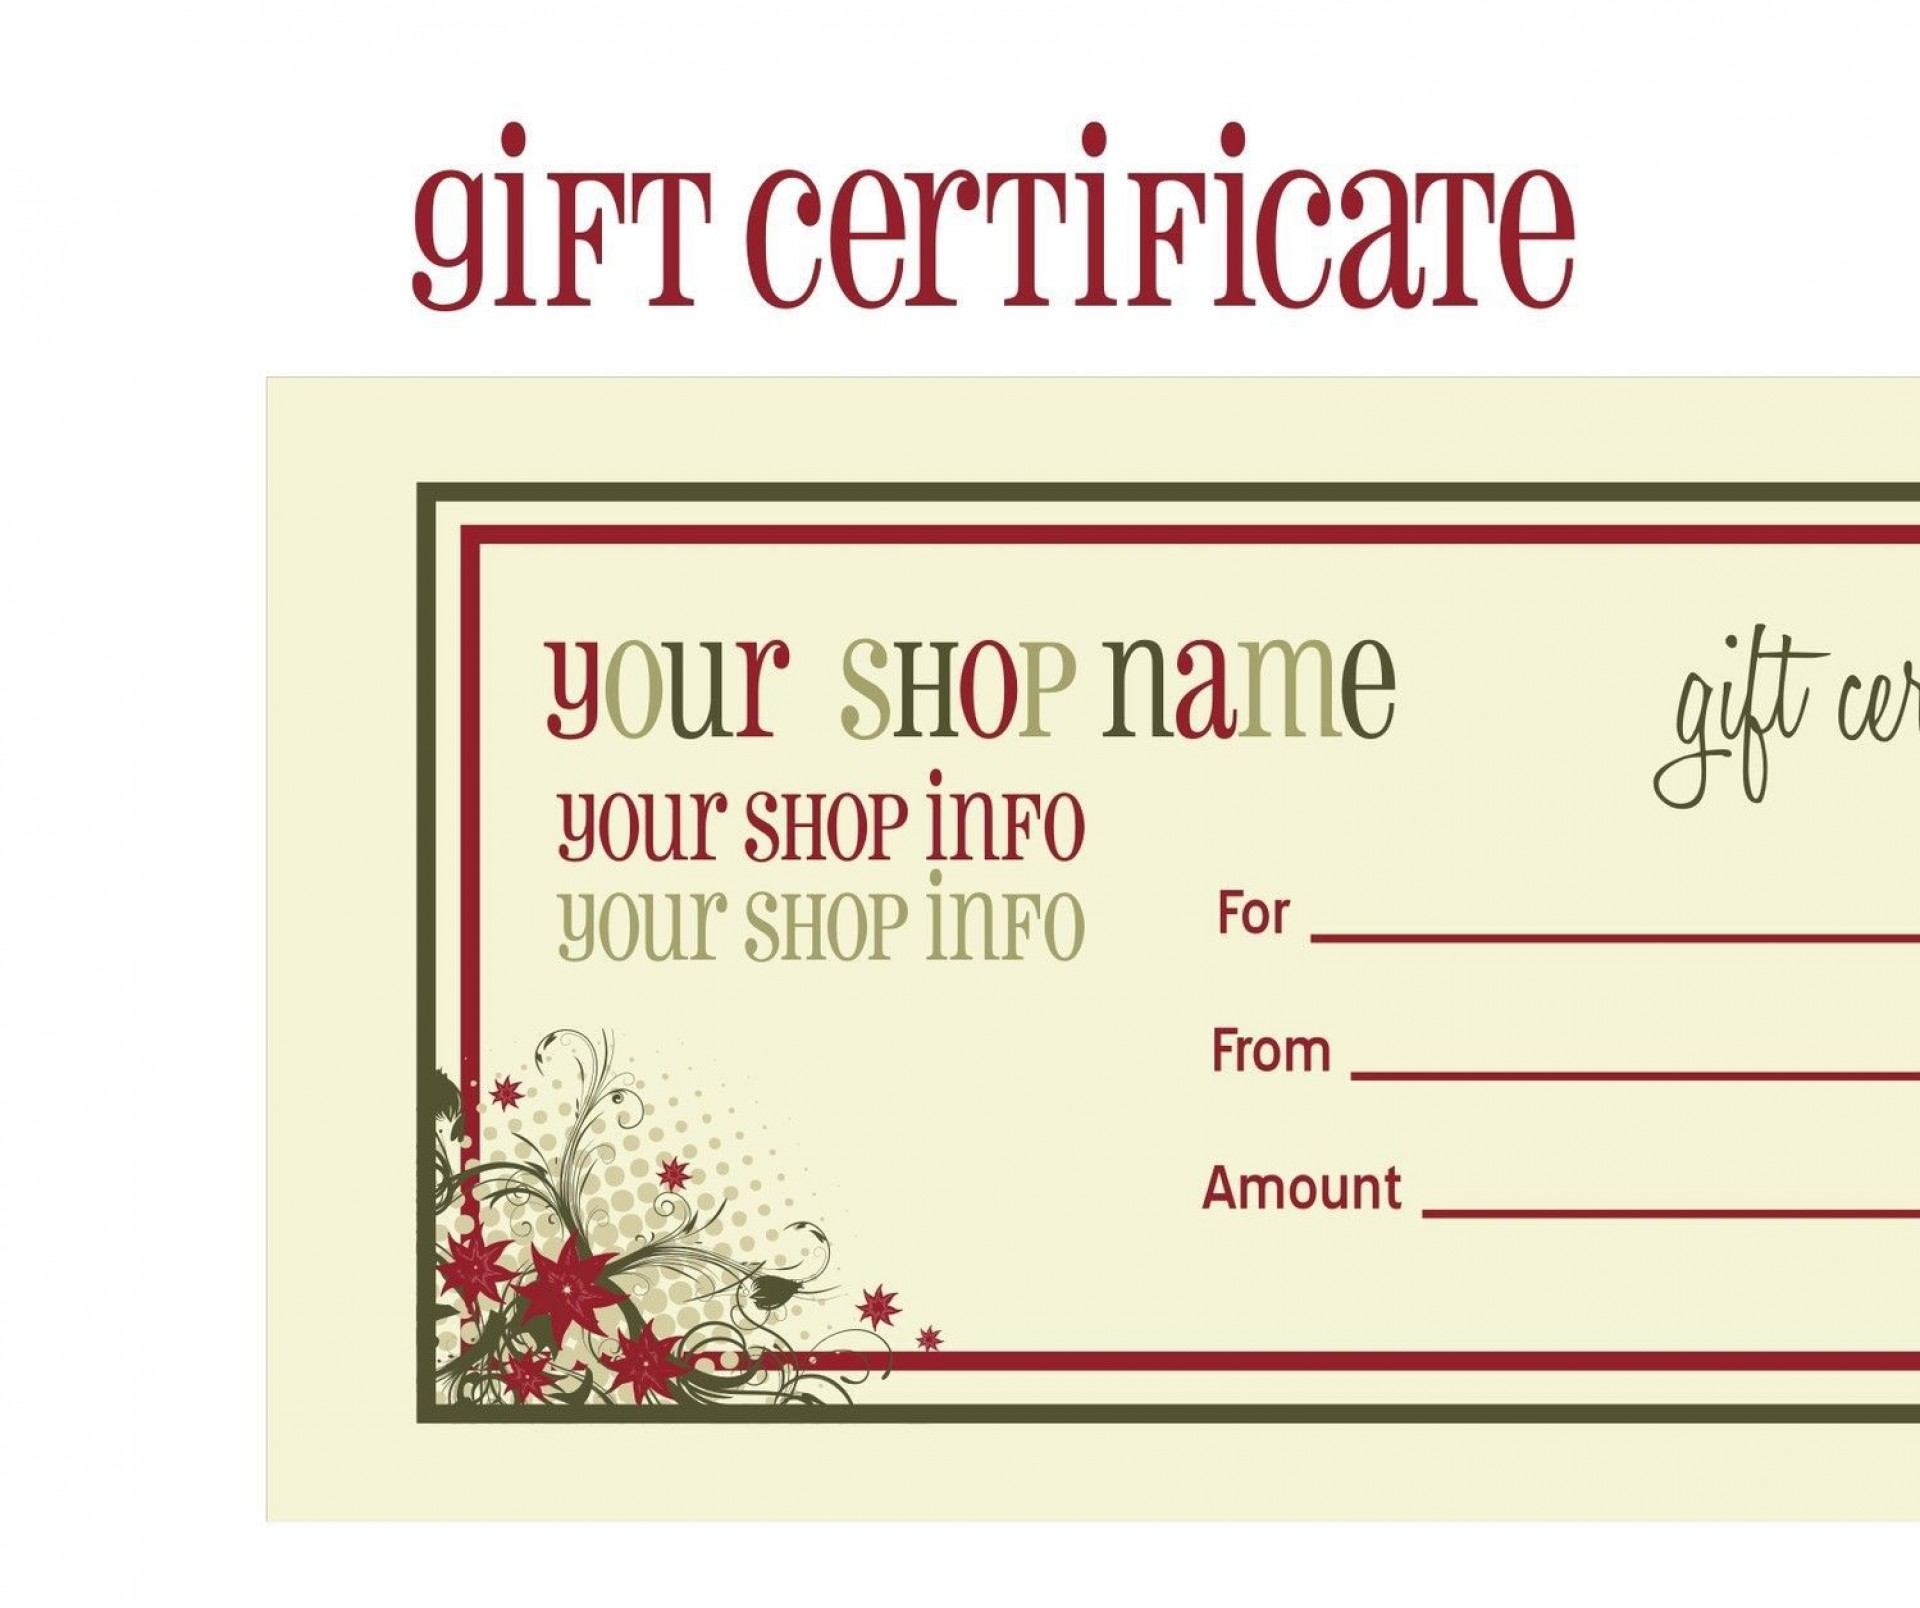 003 Awesome Printable Gift Certificate Template High Definition  Card Free Christma Massage1920